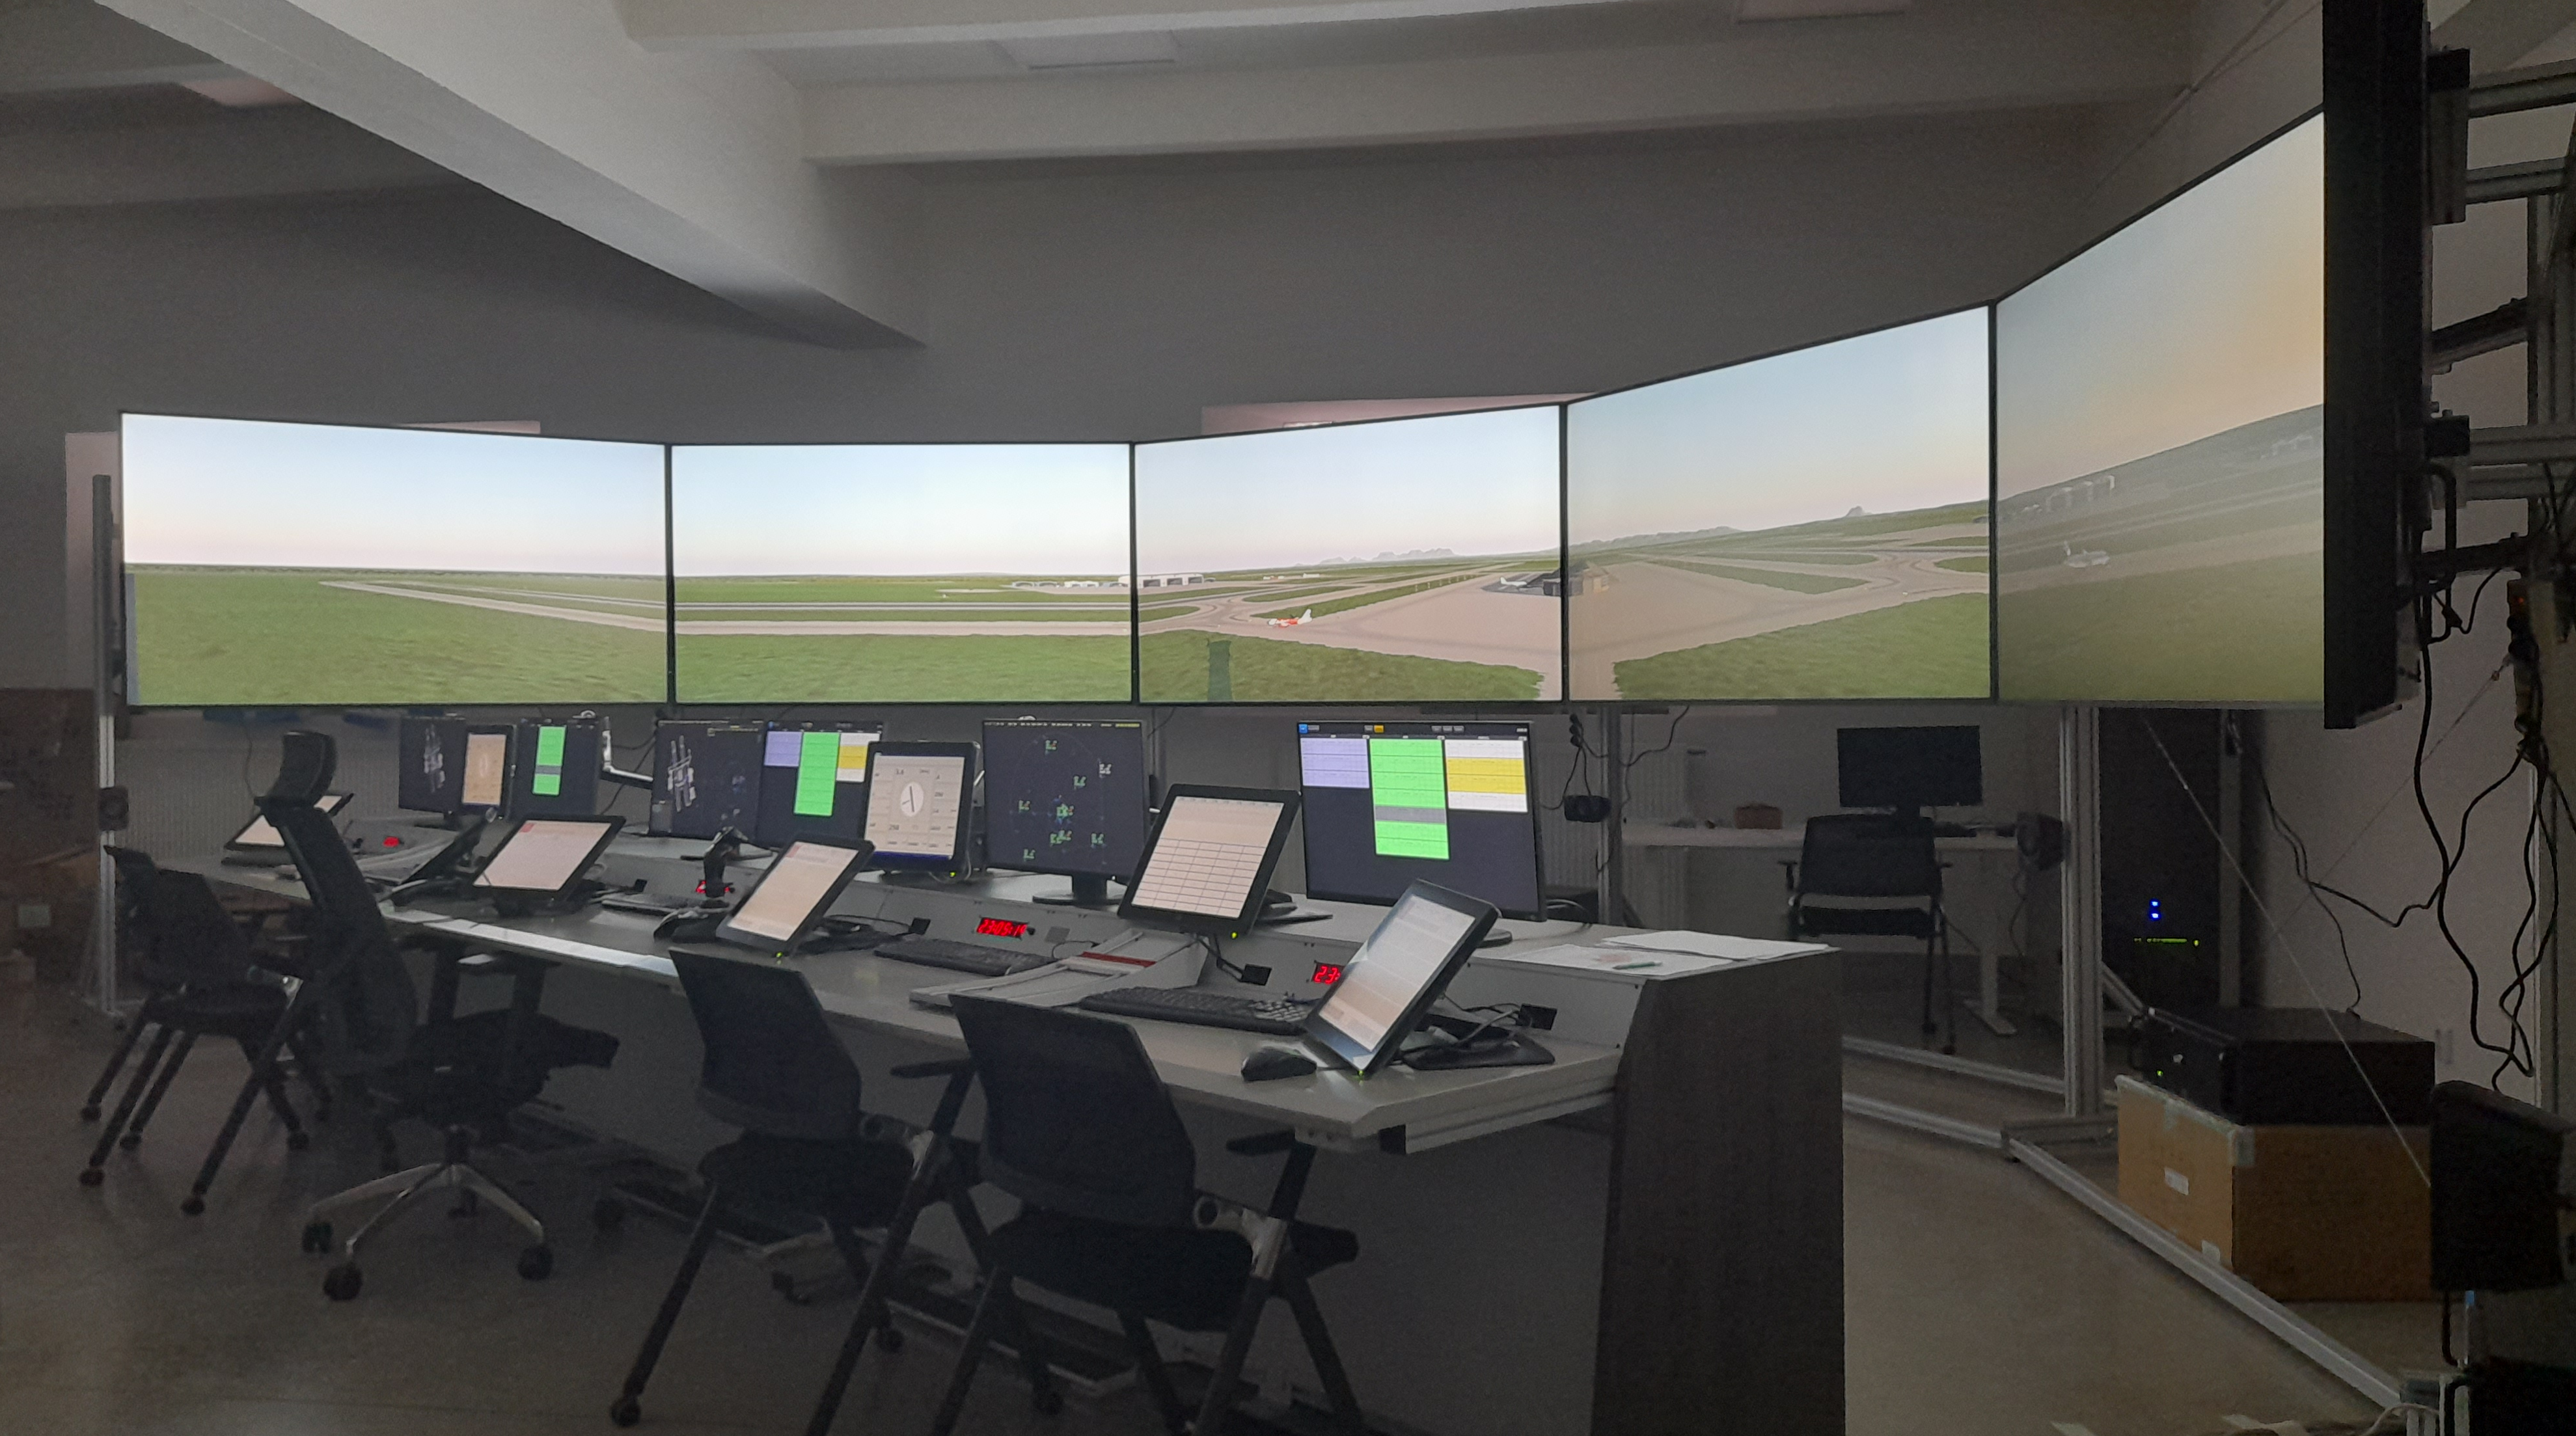 tower-6-screens-console-chair-operating-skyradar